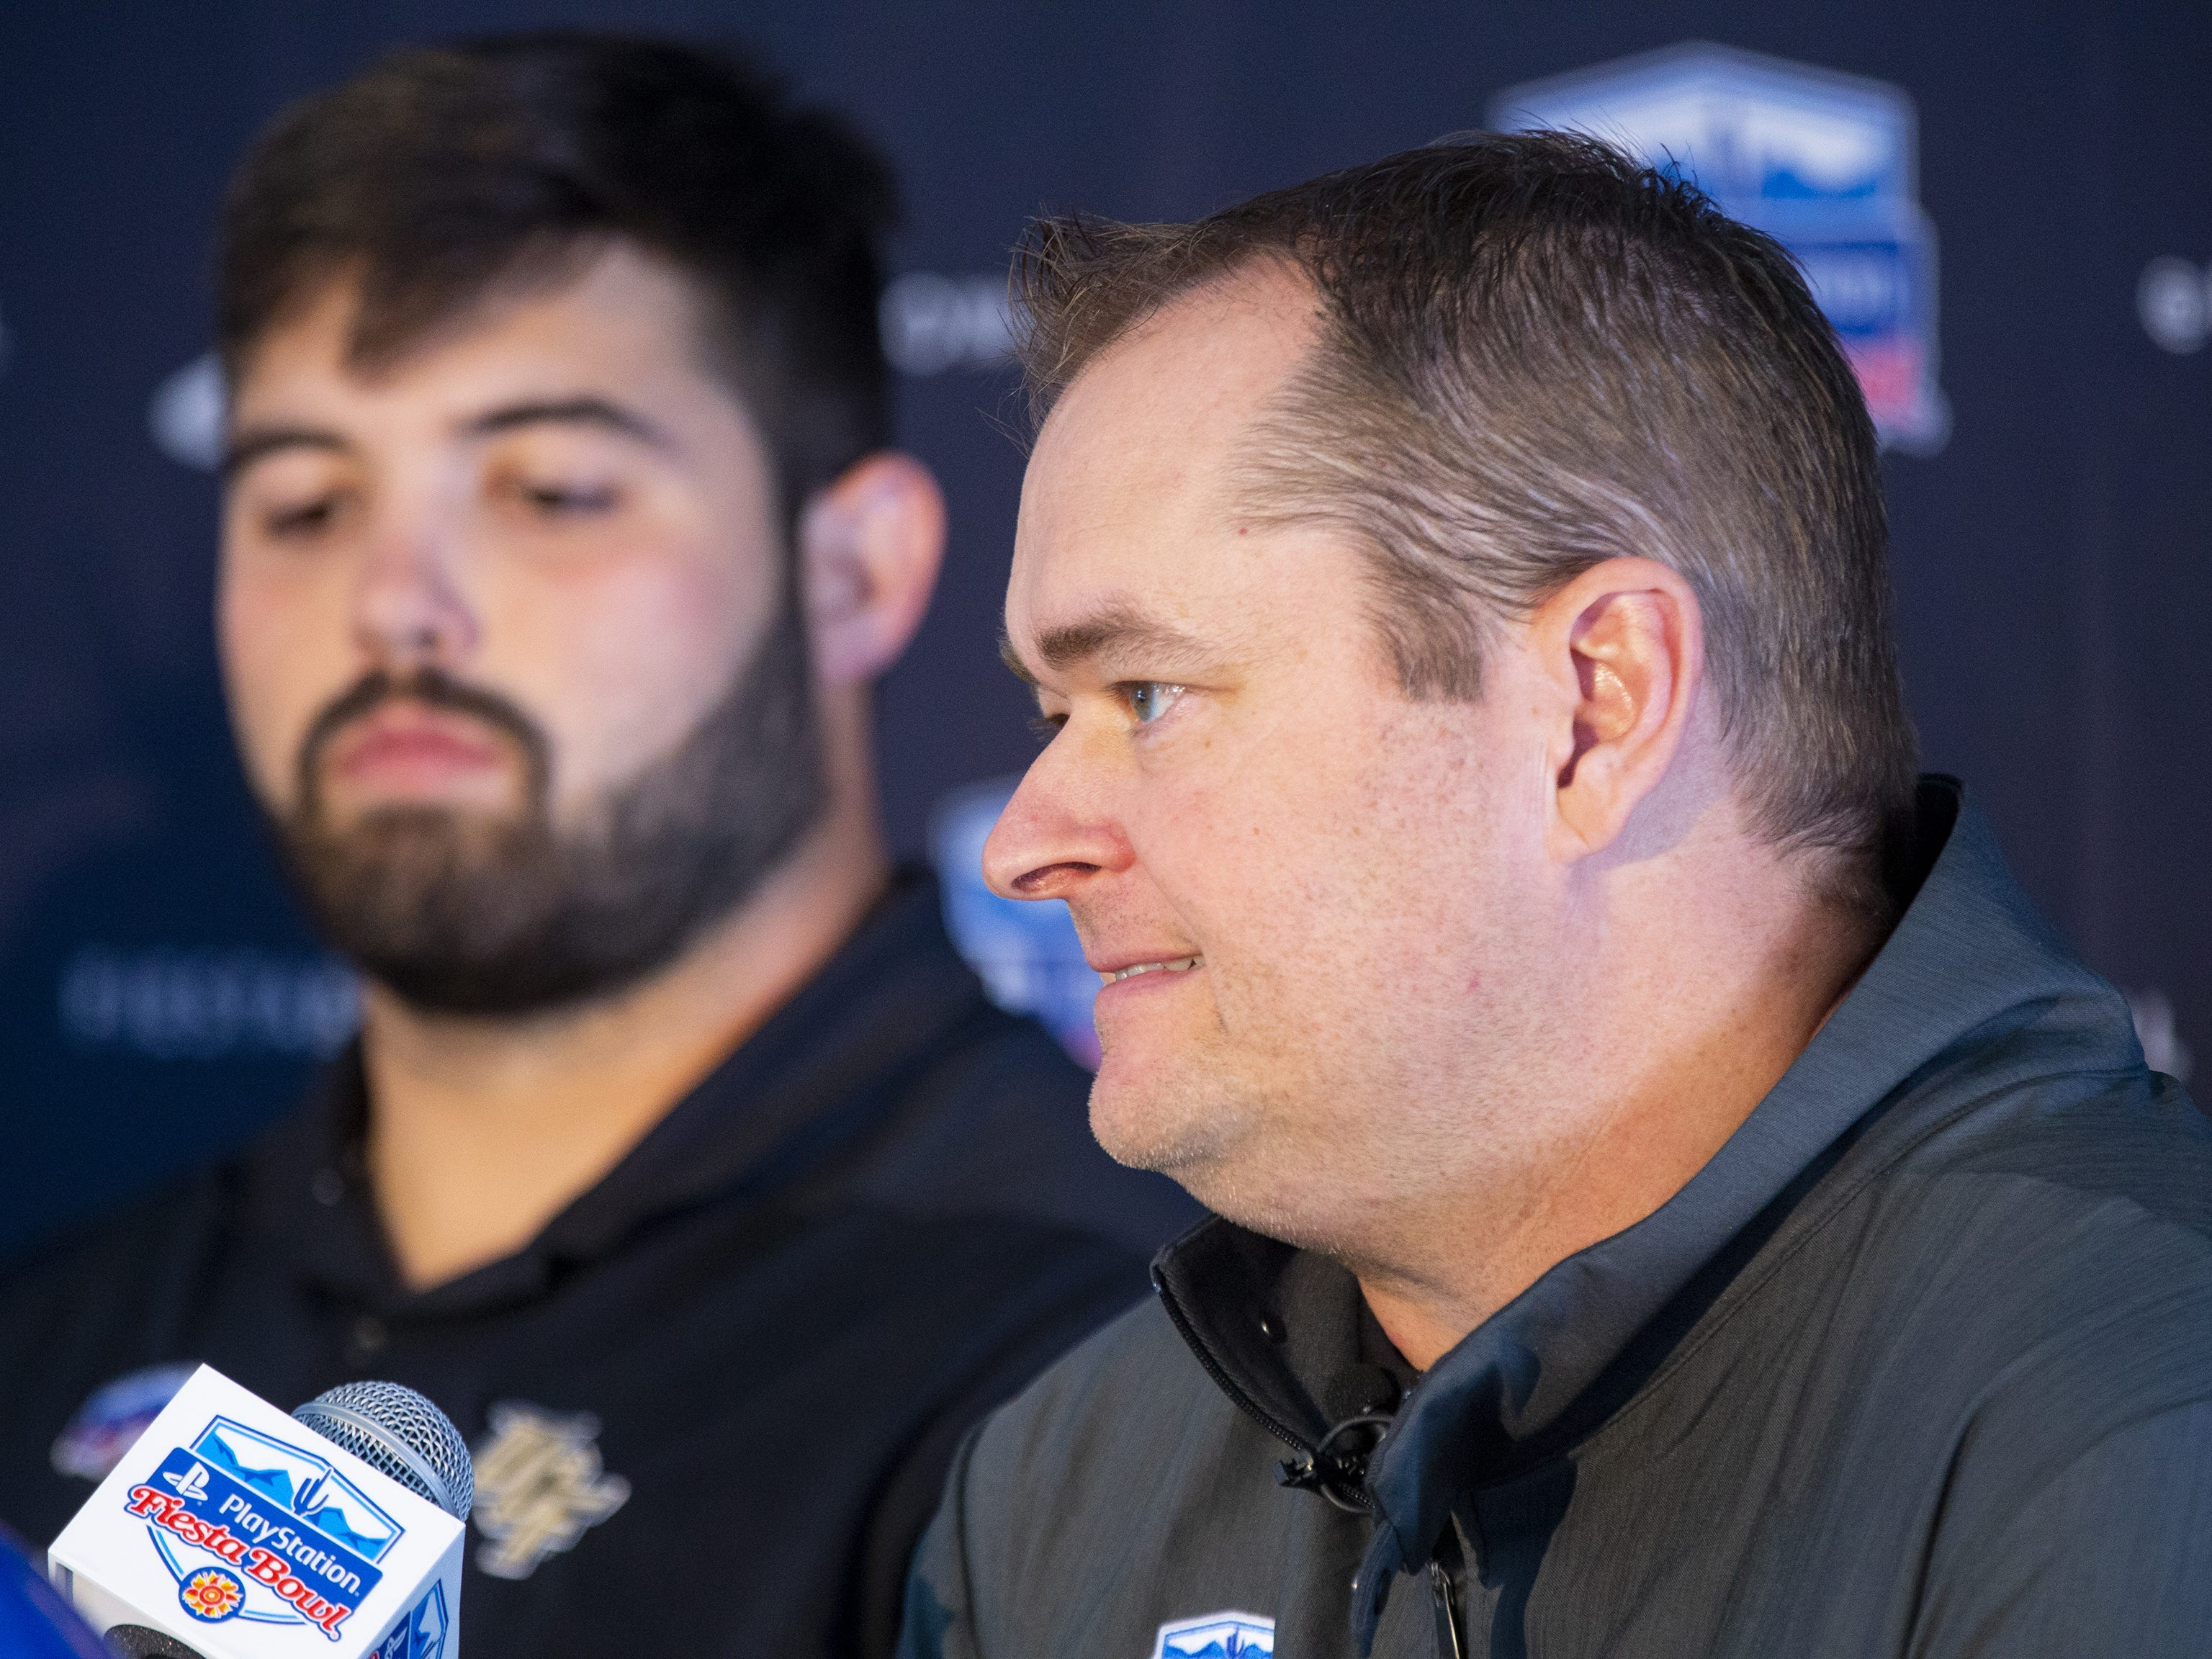 Central Florida head football coach Josh Heupel speaks to the media after arriving at Sky Harbor International Airport in Phoenix on December 27. Central Florida will face LSU in the Fiesta Bowl on New Year's Day.